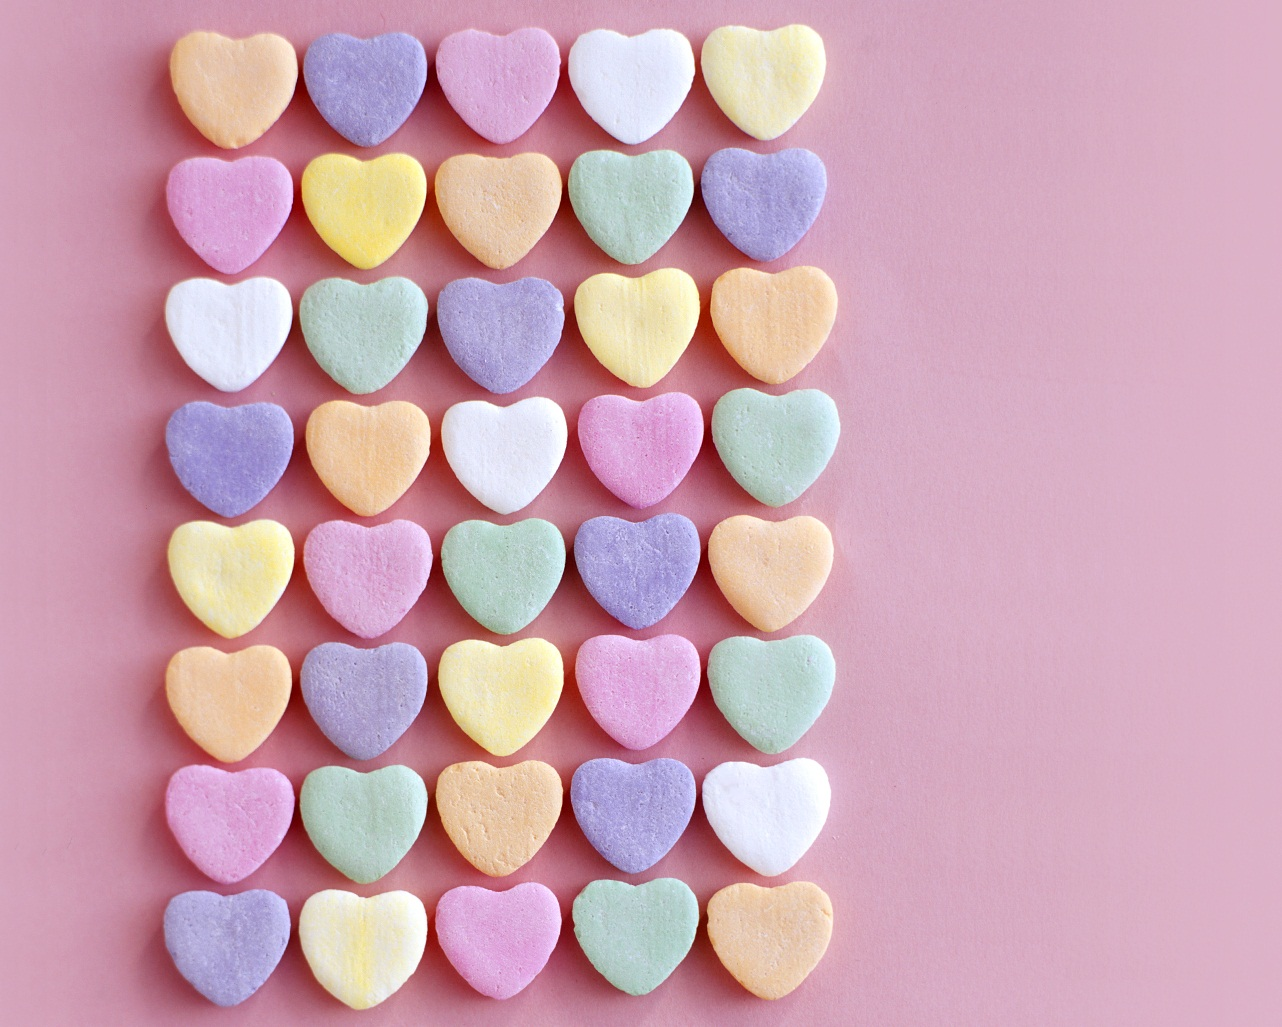 candy hearts valentines day wallpaper for desktop Office Ink Blog 1282x1027